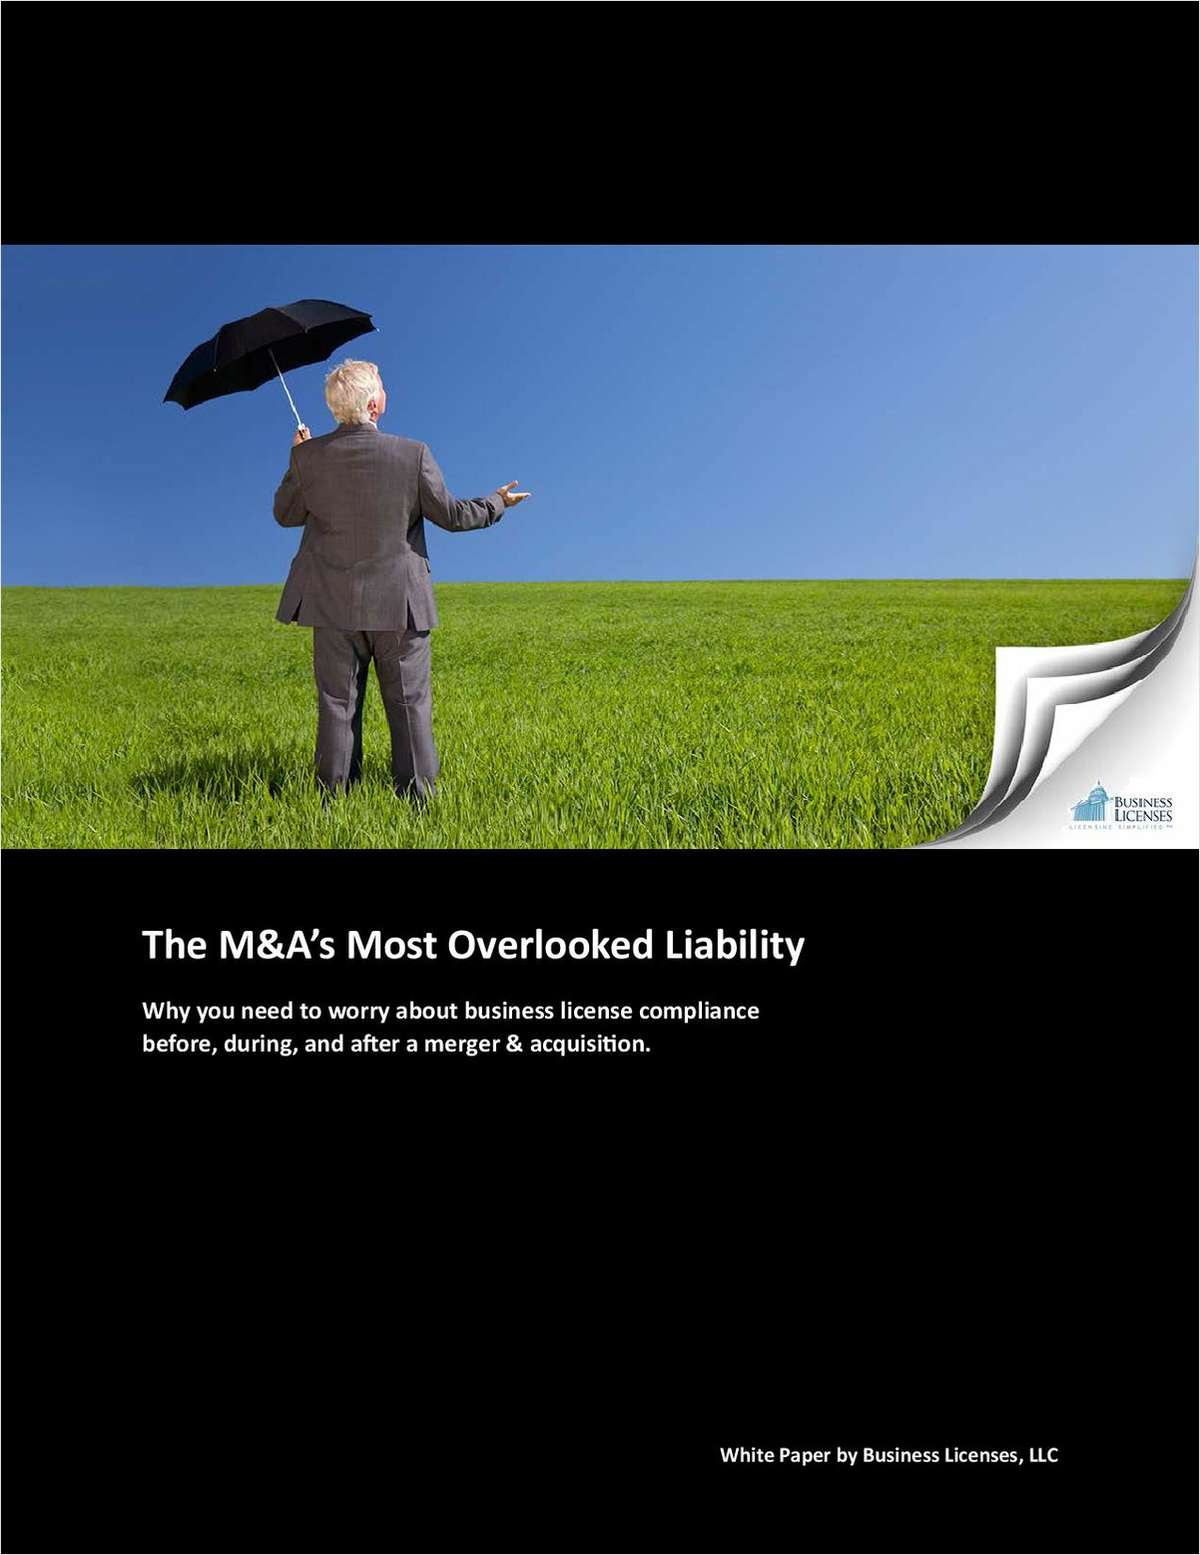 The M&As Most Overlooked Liability